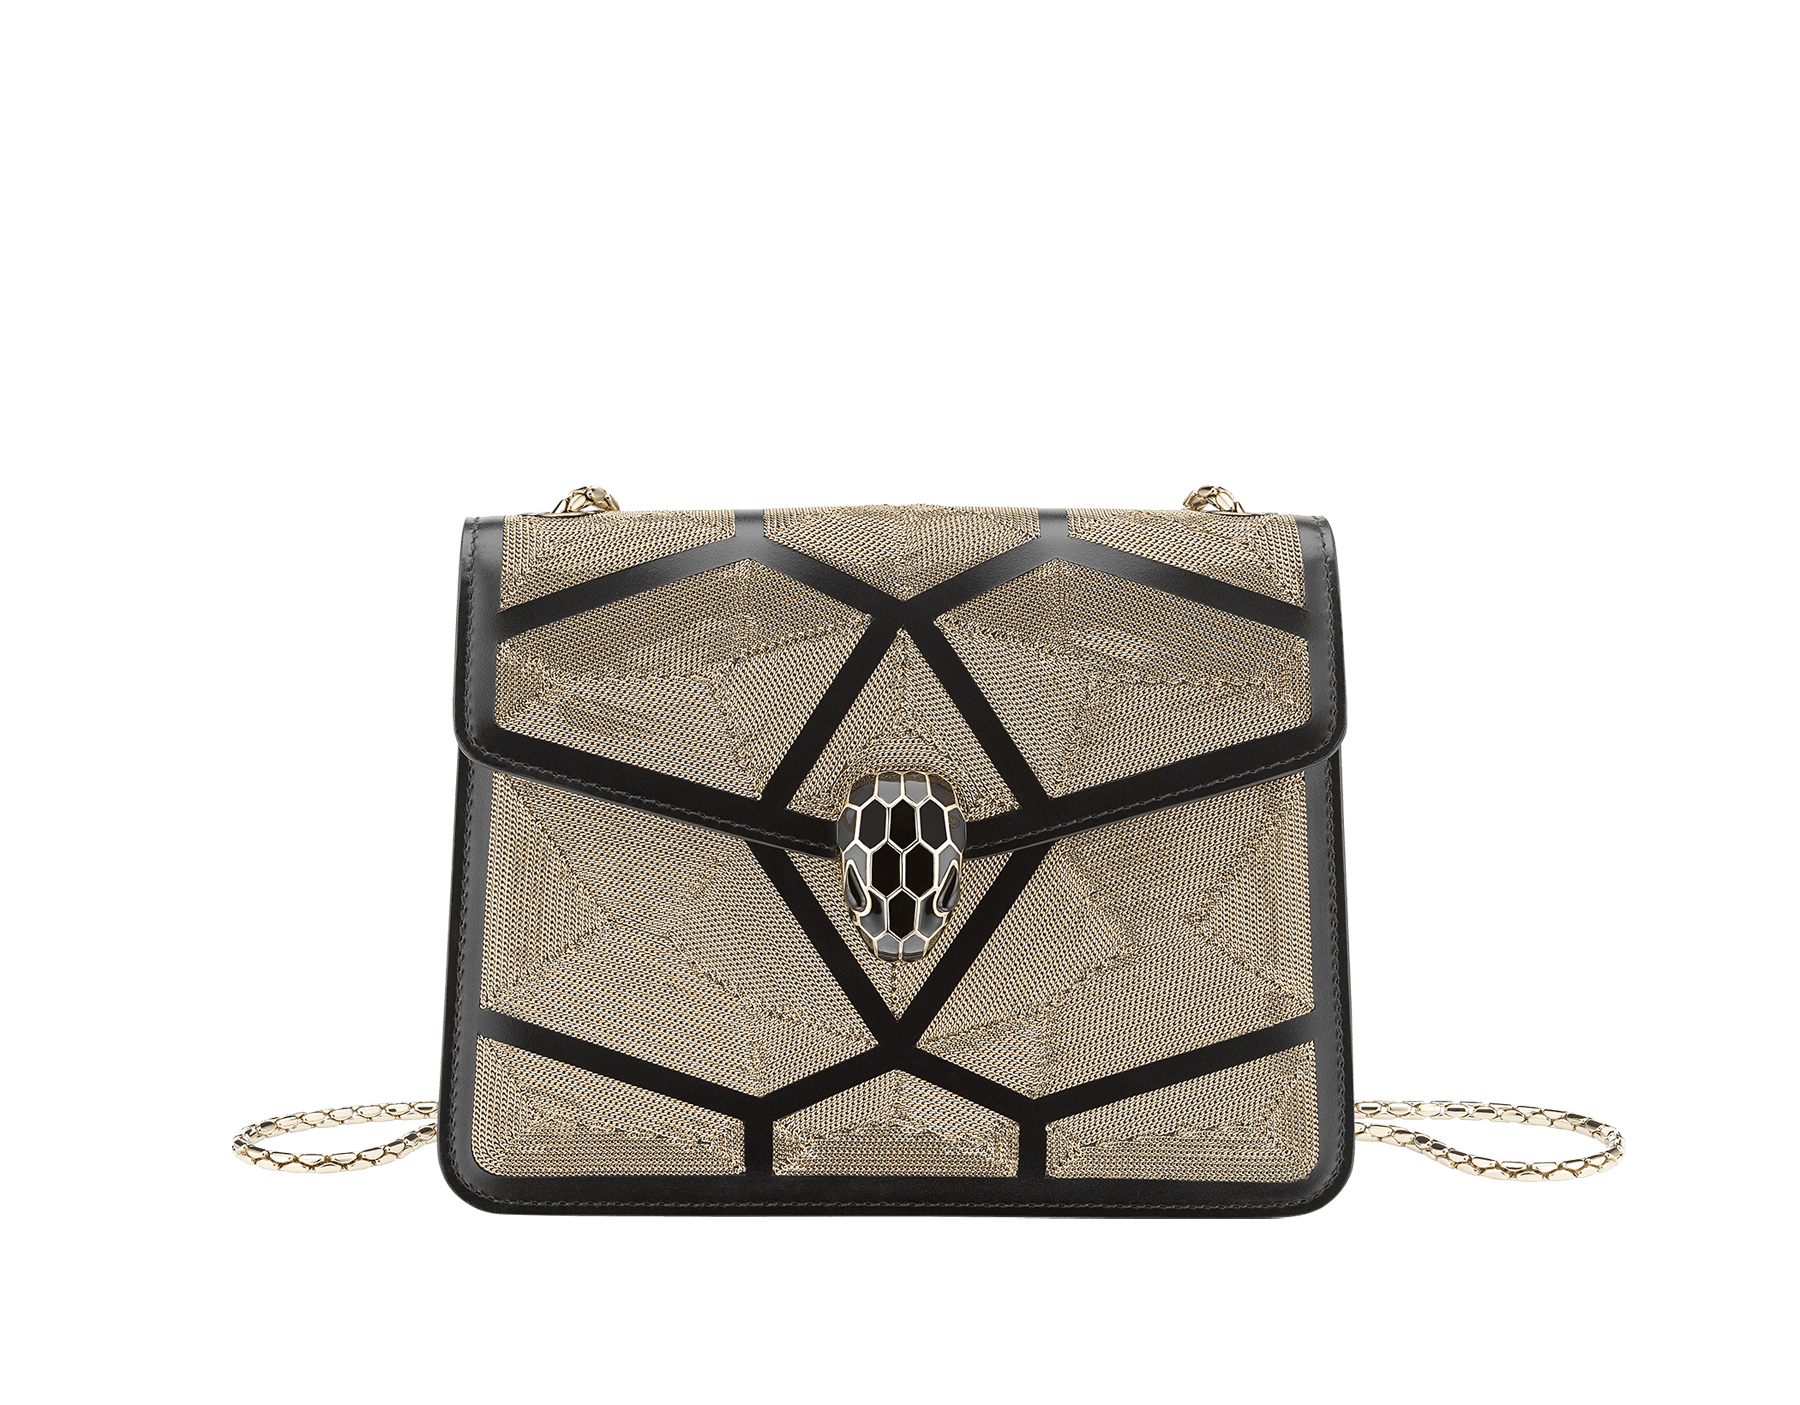 """Serpenti Forever"" crossbody bag in black calf leather with a Million Chain motif. Iconic snake head closure in light gold plated brass enriched with black enamel and black onyx eyes. 288904 image 1"